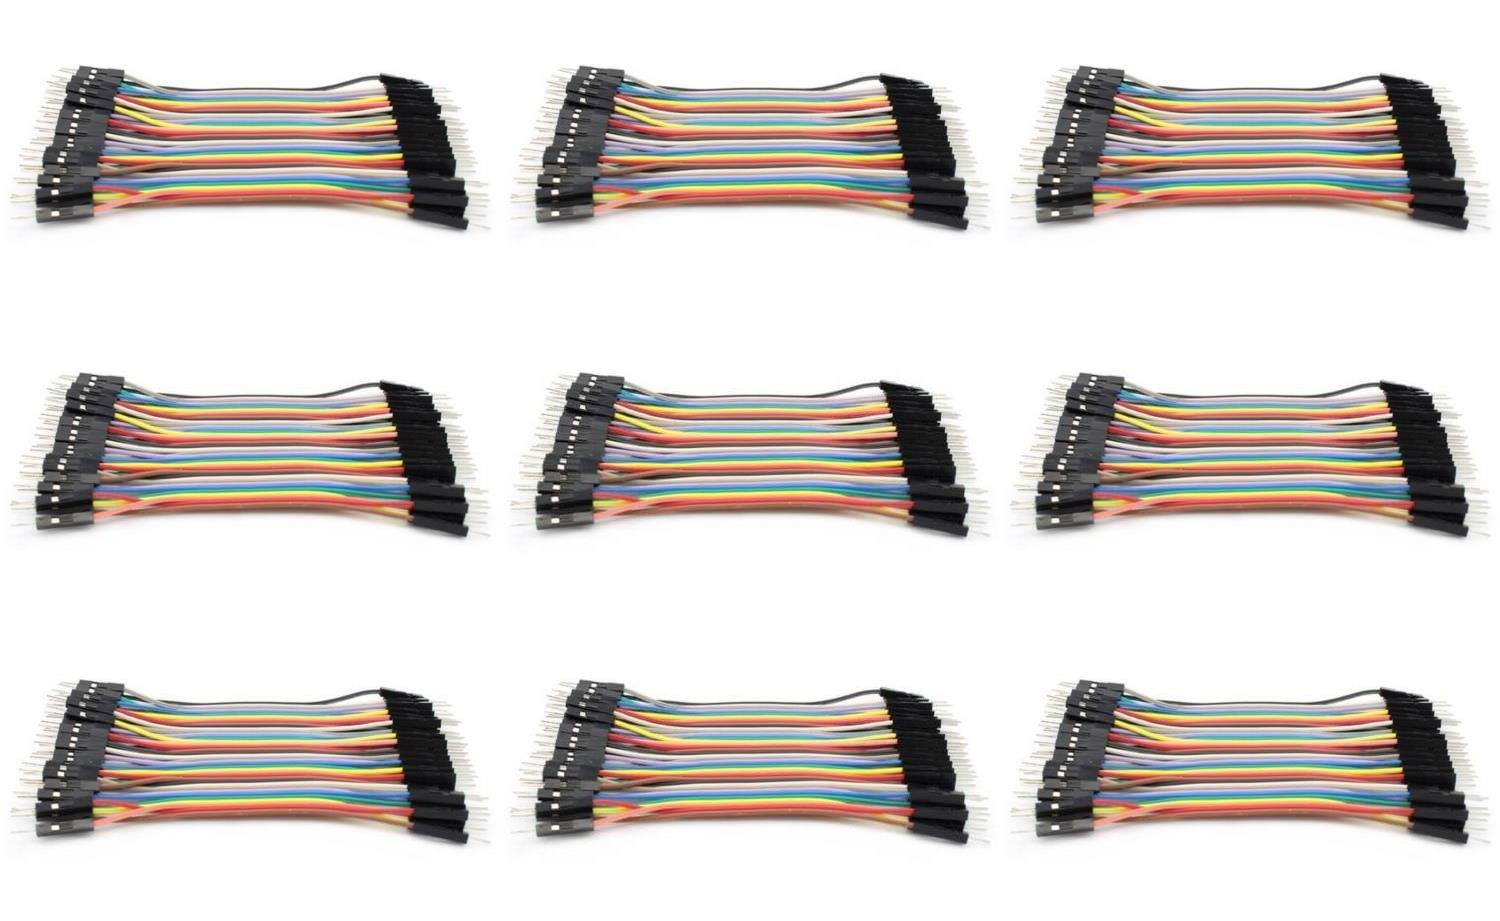 9 x Quantity of Walkera QR X350 PRO Dupont 40 Qty 10cm 2.54mm 1pin Male to Male Jumper Wire Dupont Cables - FAST FROM Orlando, Florida USA